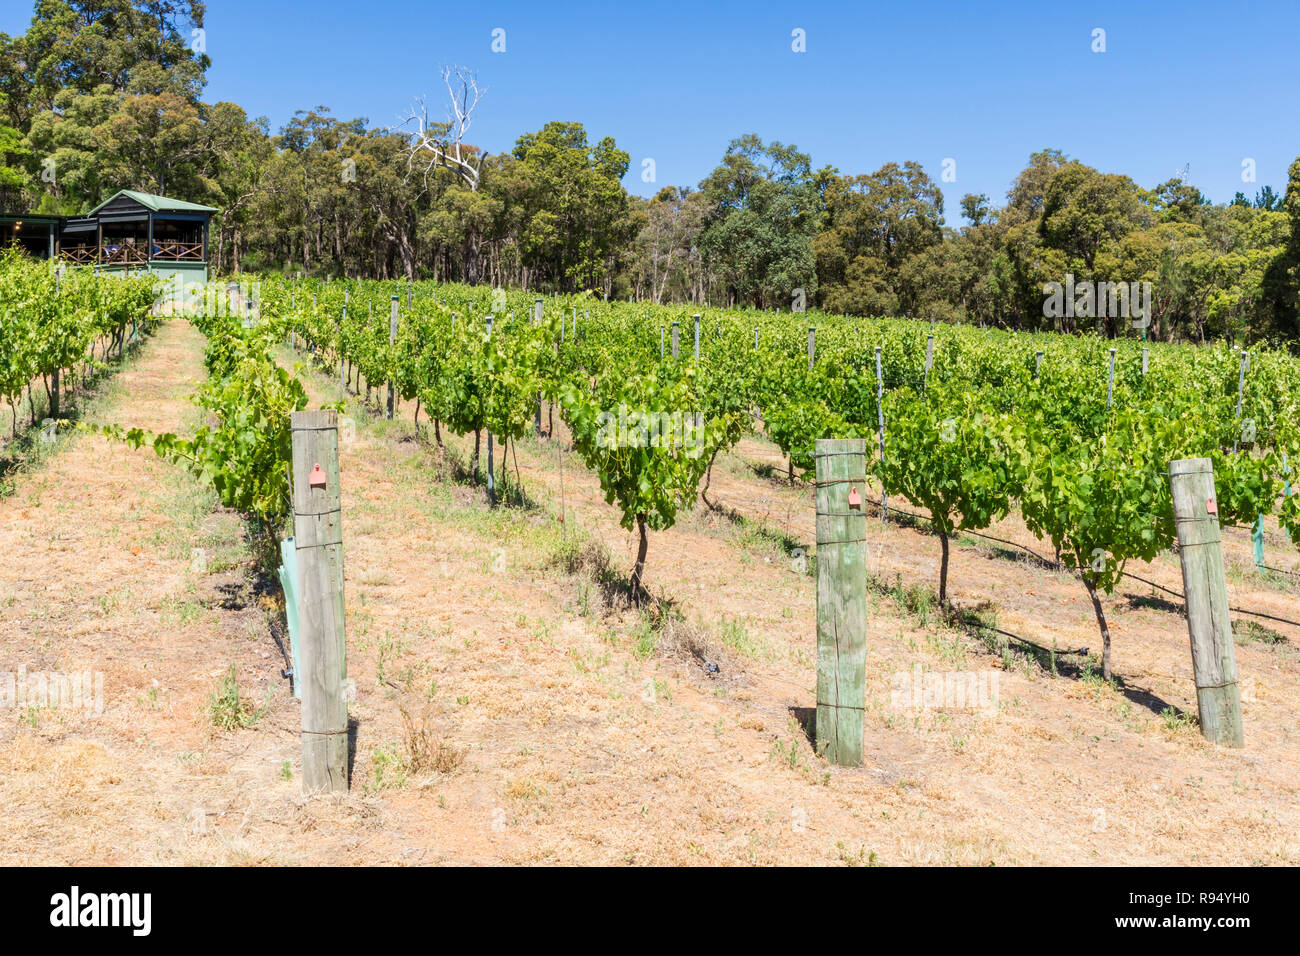 Grapevines at Fairbrossen Winery and Cafe in the Bickley Valley, Carmel, Western Australia - Stock Image